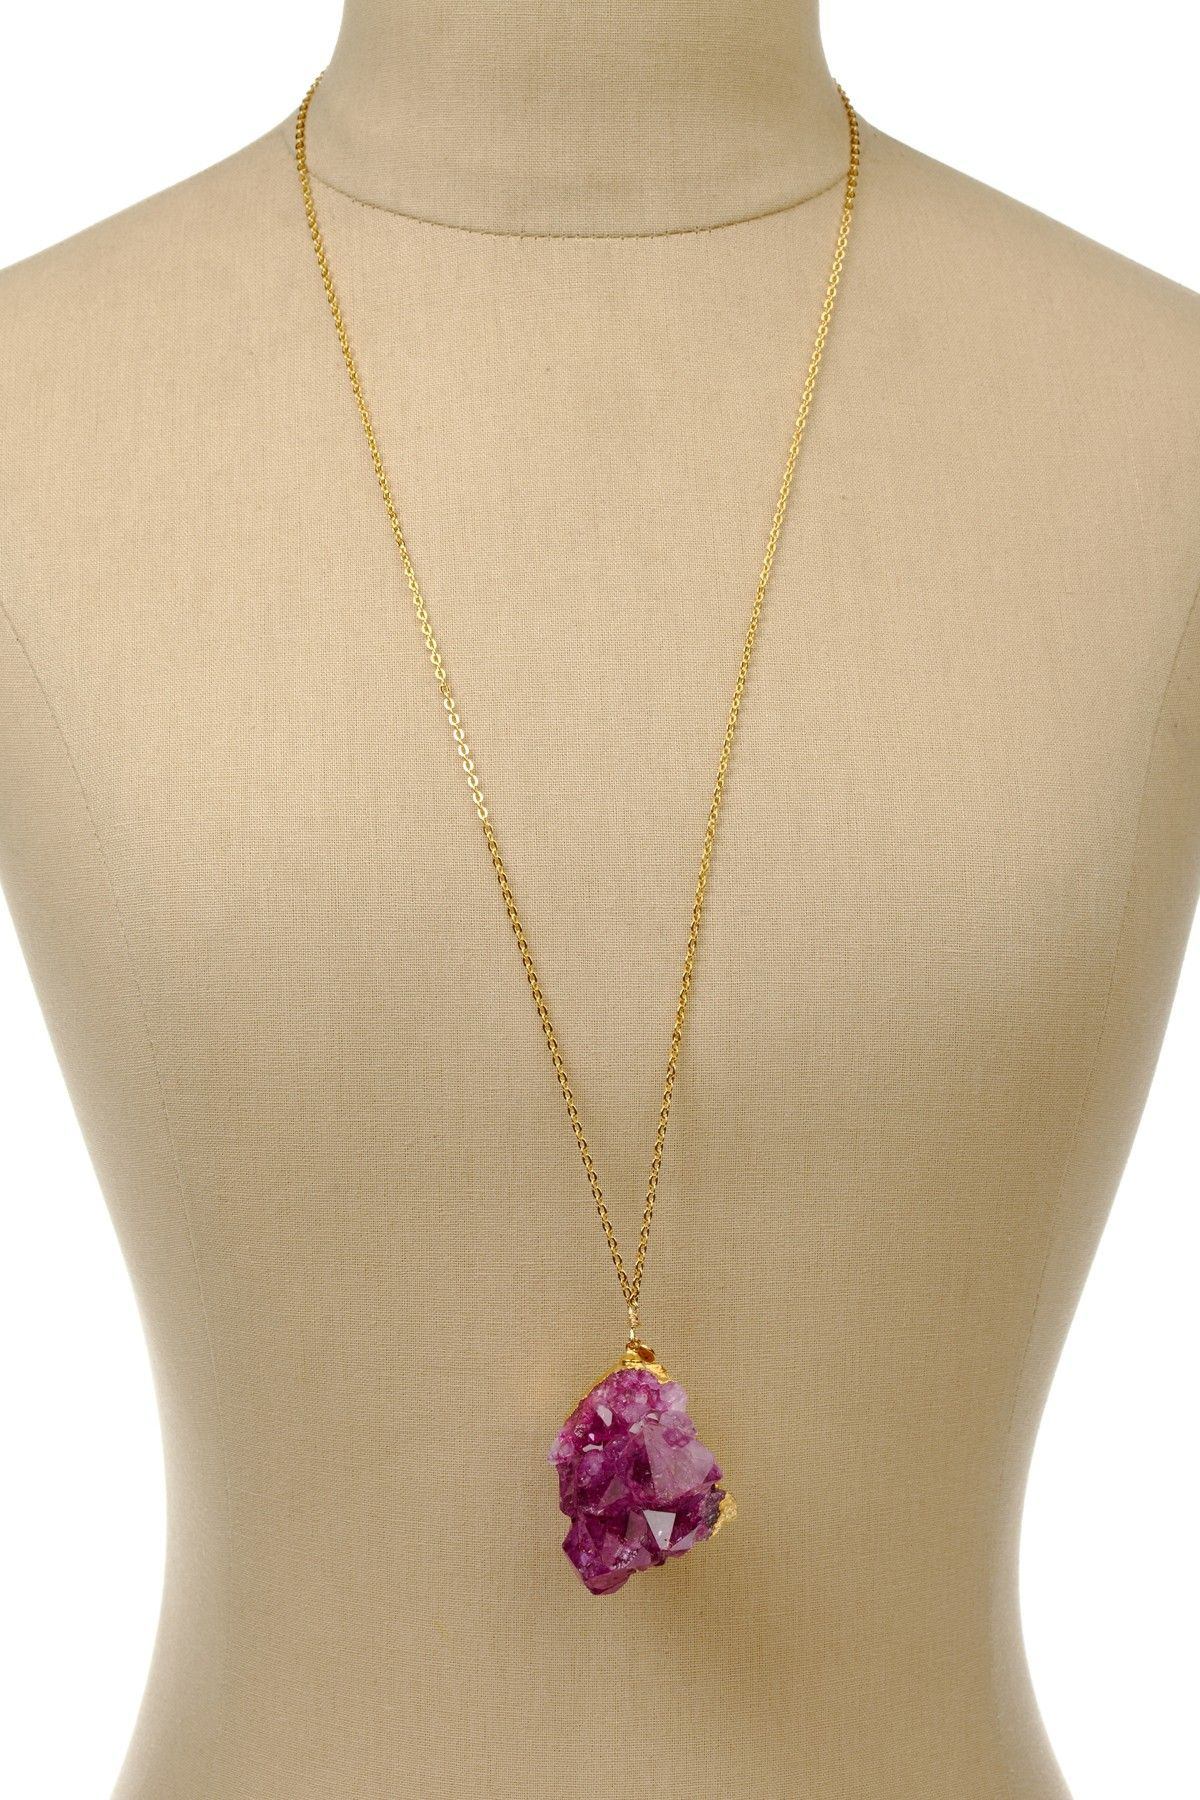 Dara Ettinger  Janet Dyed Amethyst Pendant Necklace. Mmm can't get enough crystals